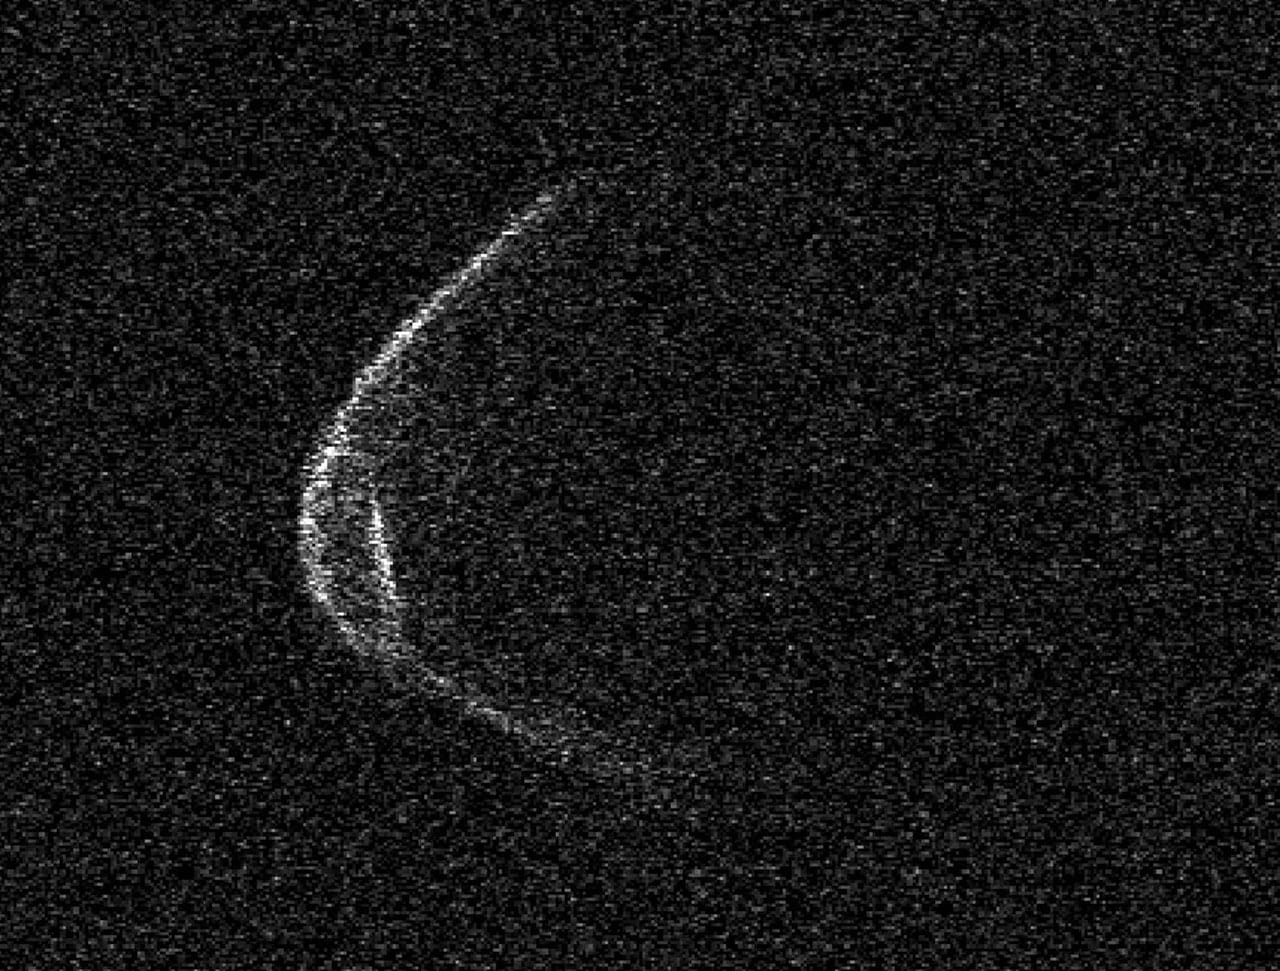 Radar image of 1998 OR2 taken by the Arecibo Observatory on April 18, 2020.  Arecibo Observatory / NASA / NSF